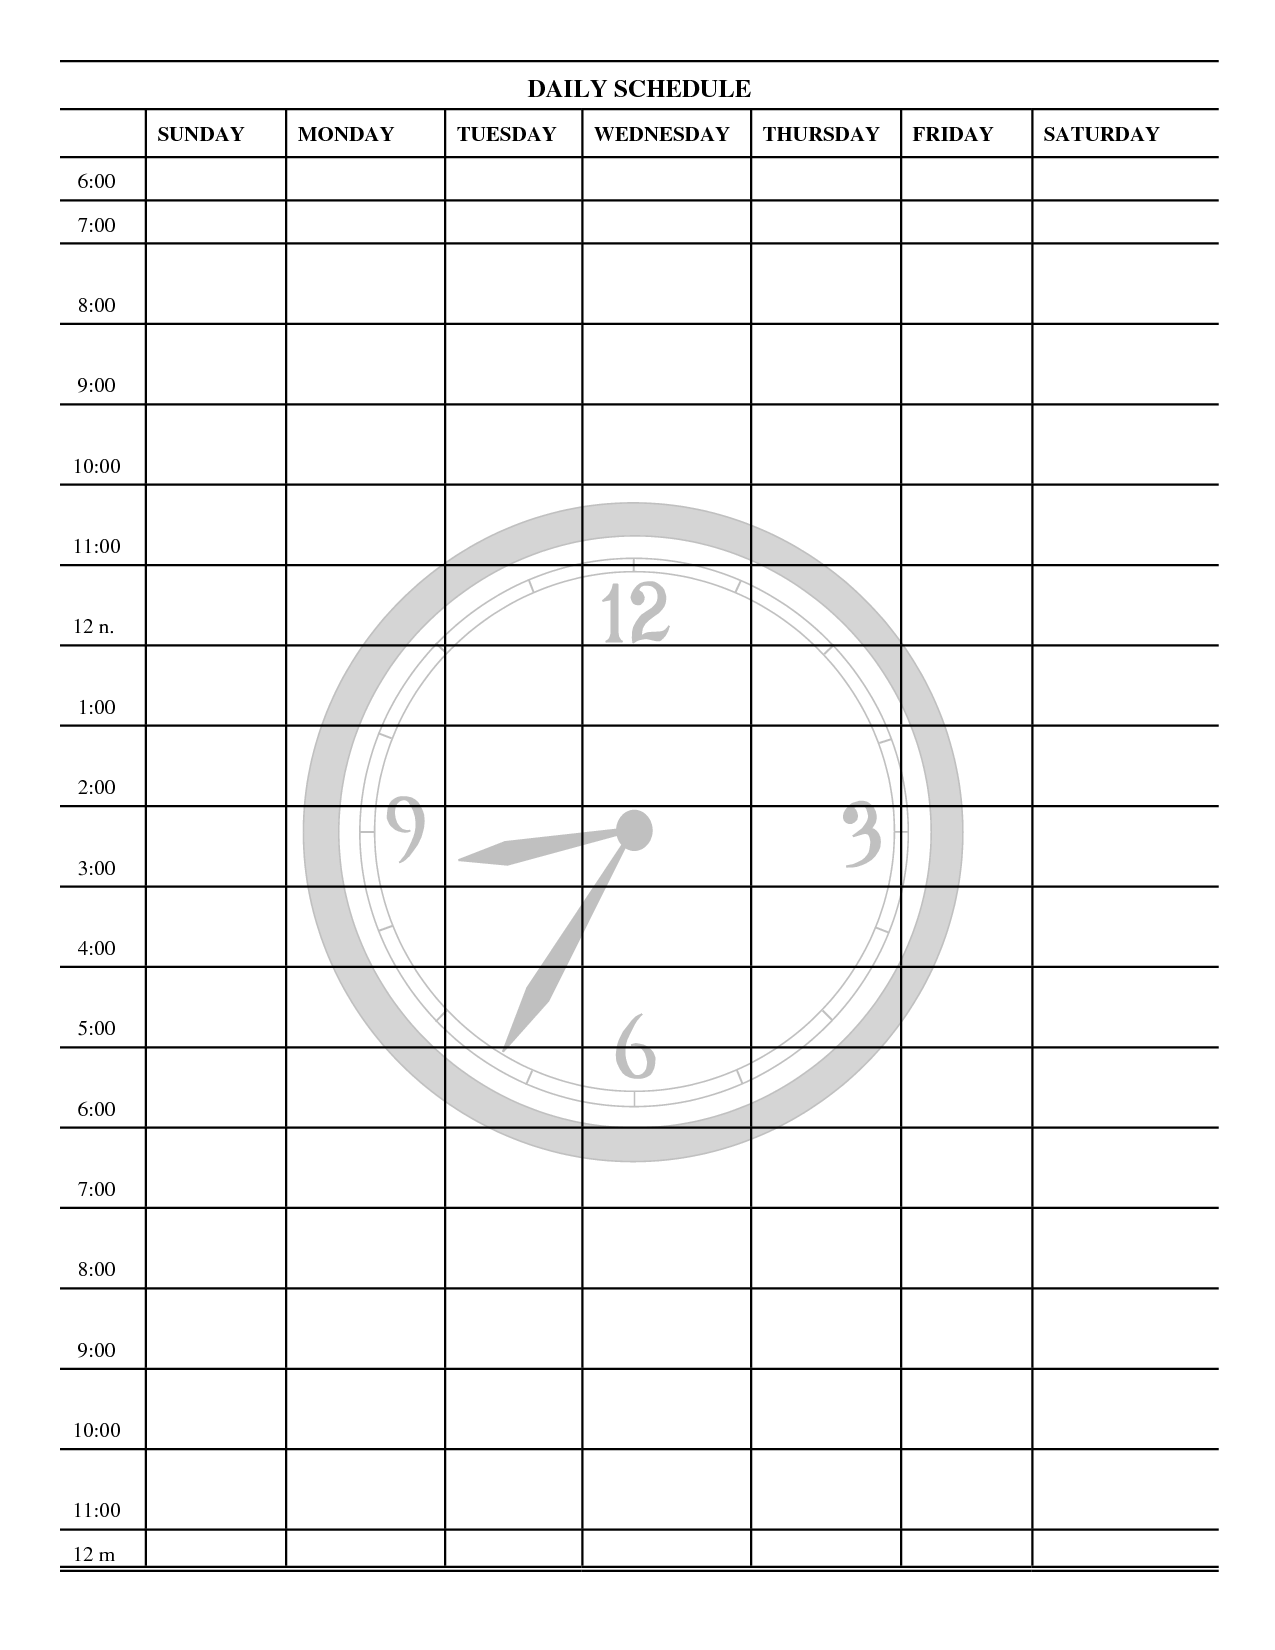 5 Images of Printable Blank Daily Schedule Template